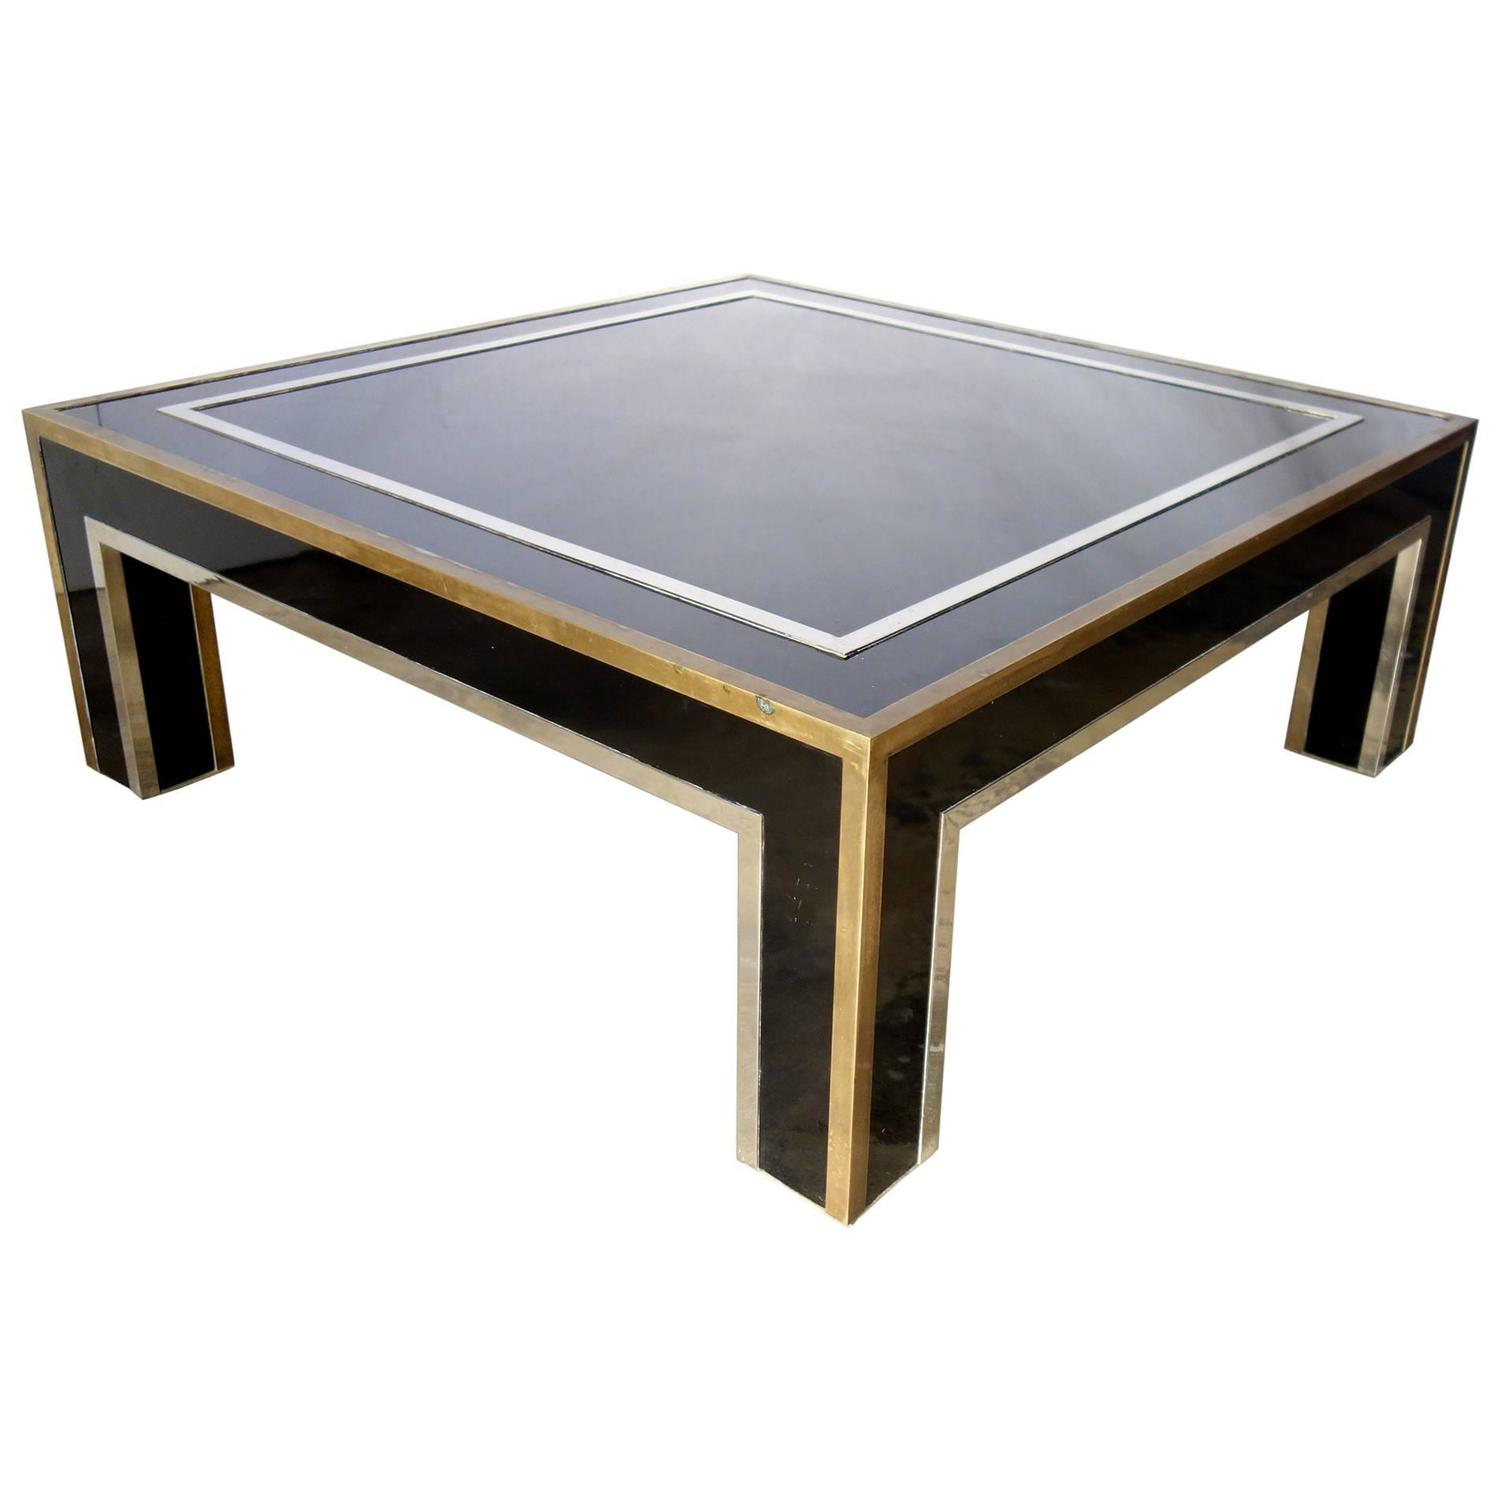 Italian Mid Century Black Square Metal Coffee Table With Chrome And Brass Trim At 1stdibs